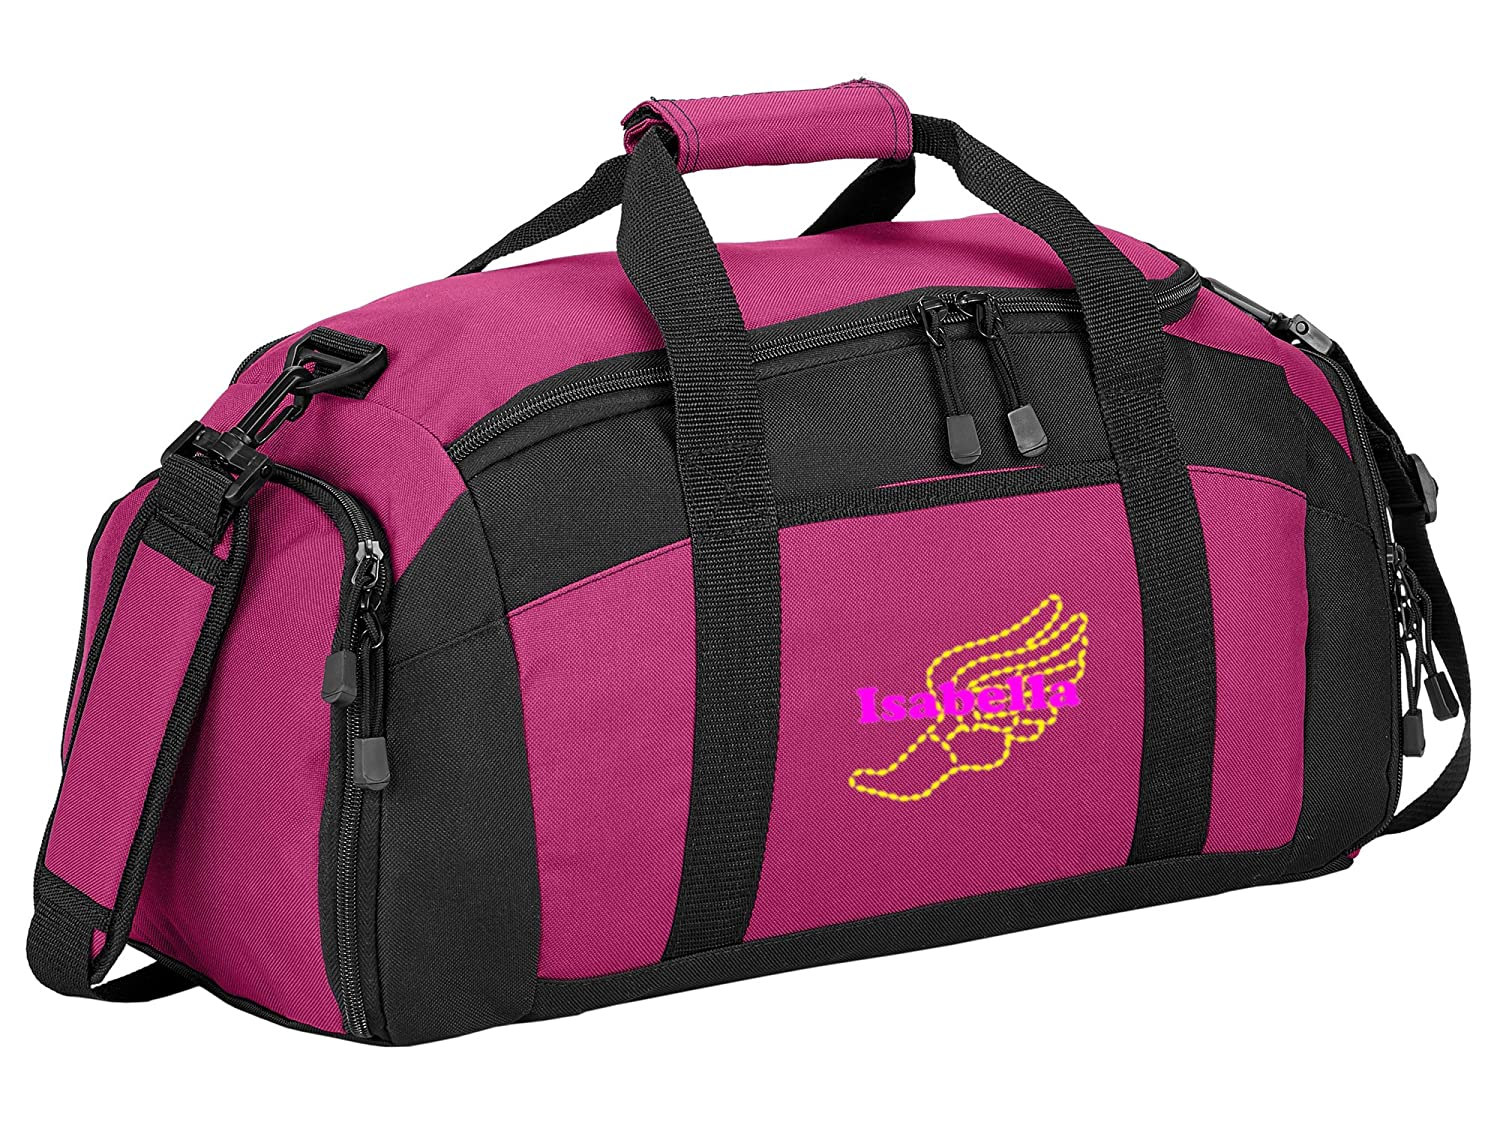 Personalized Track Field Gym Duffel Bag with Custom Text Sports Bag with Customizable Embroidered Monogram Design Tropical Pink